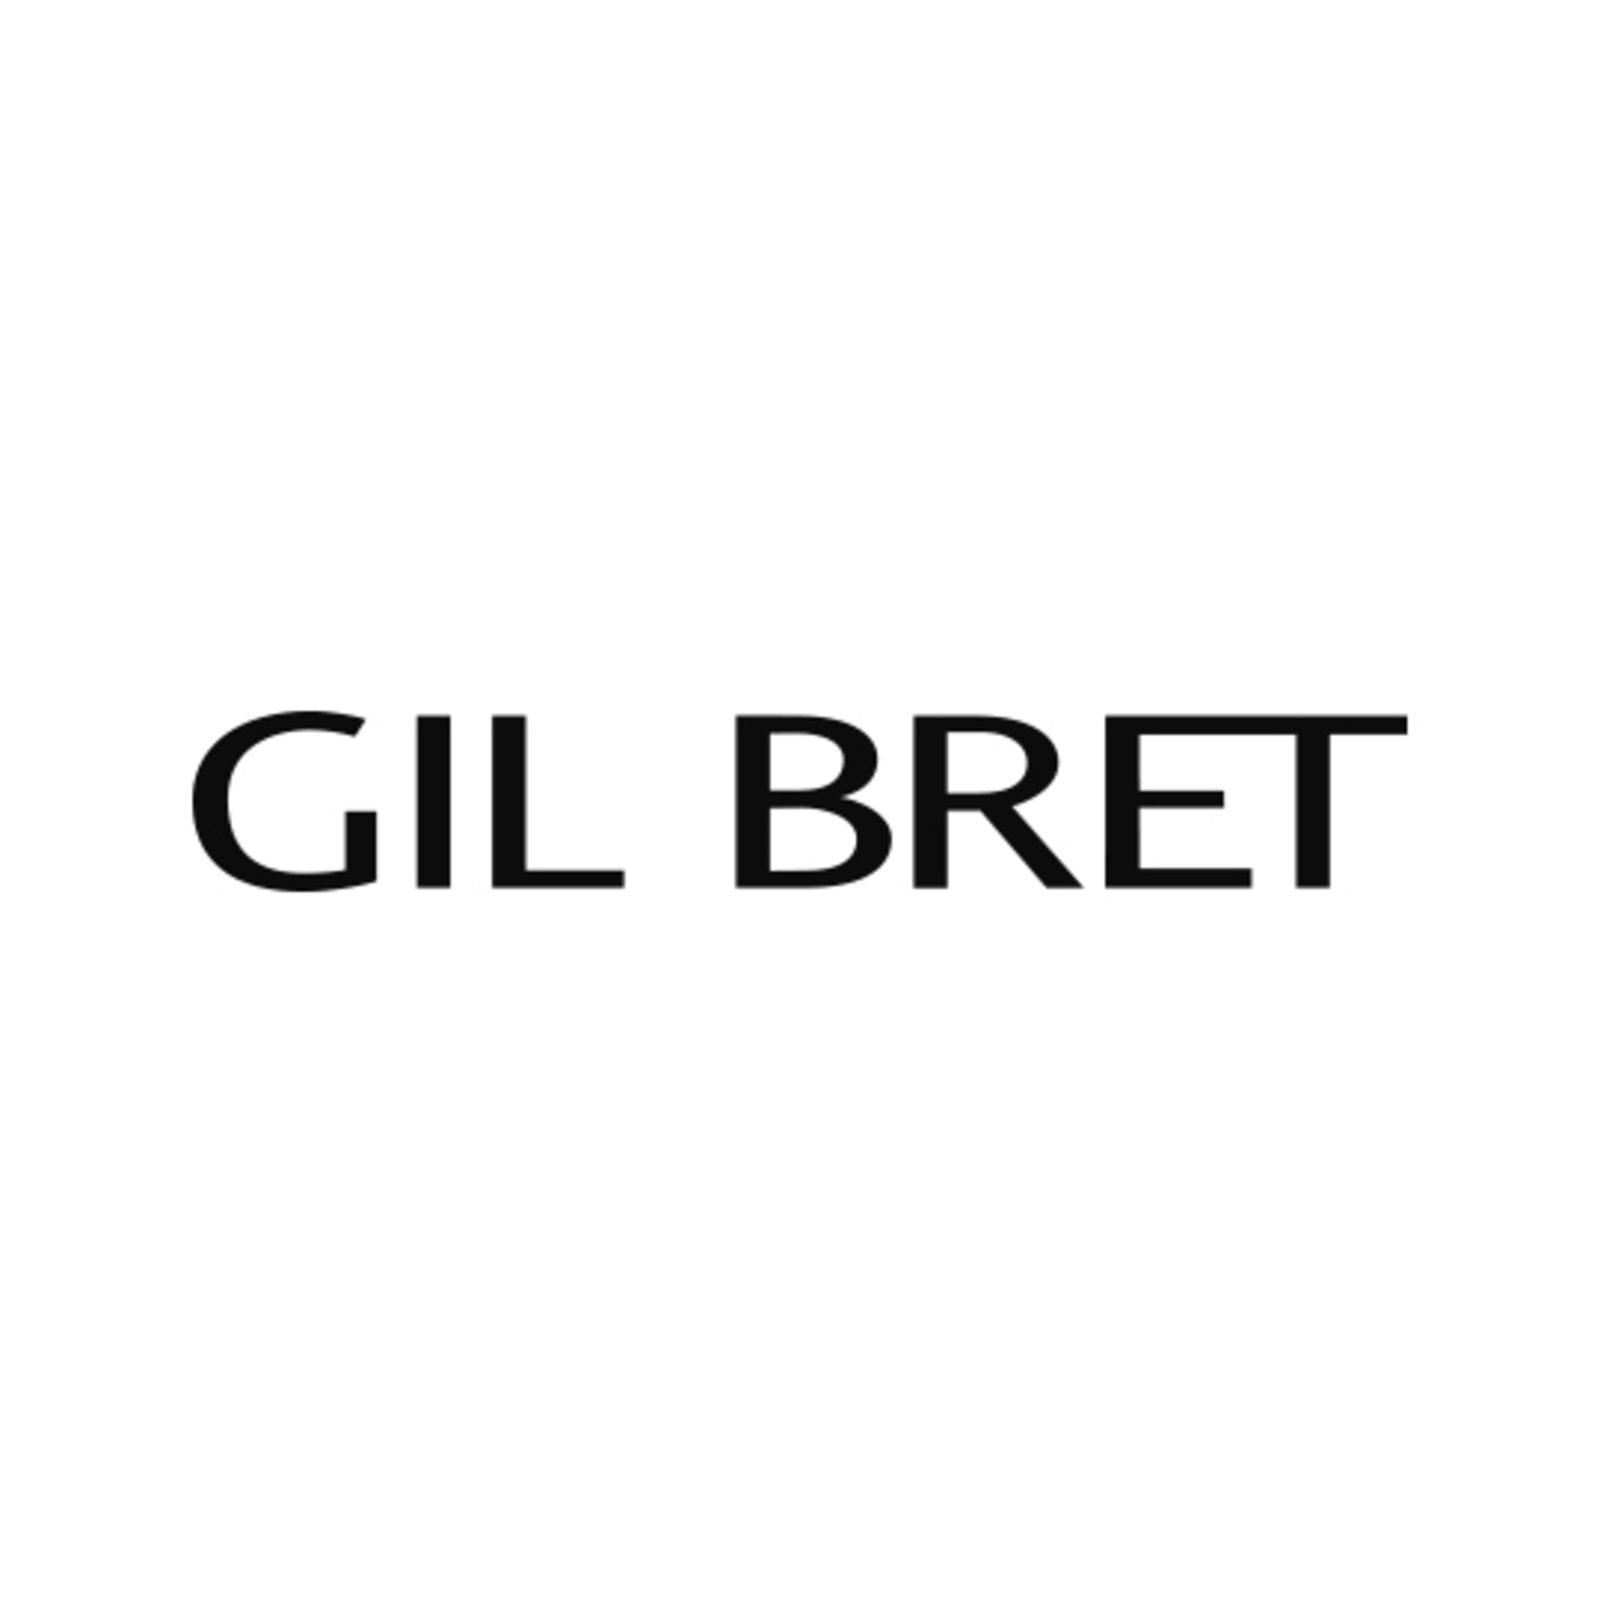 GIL BRET (Afbeelding 1)